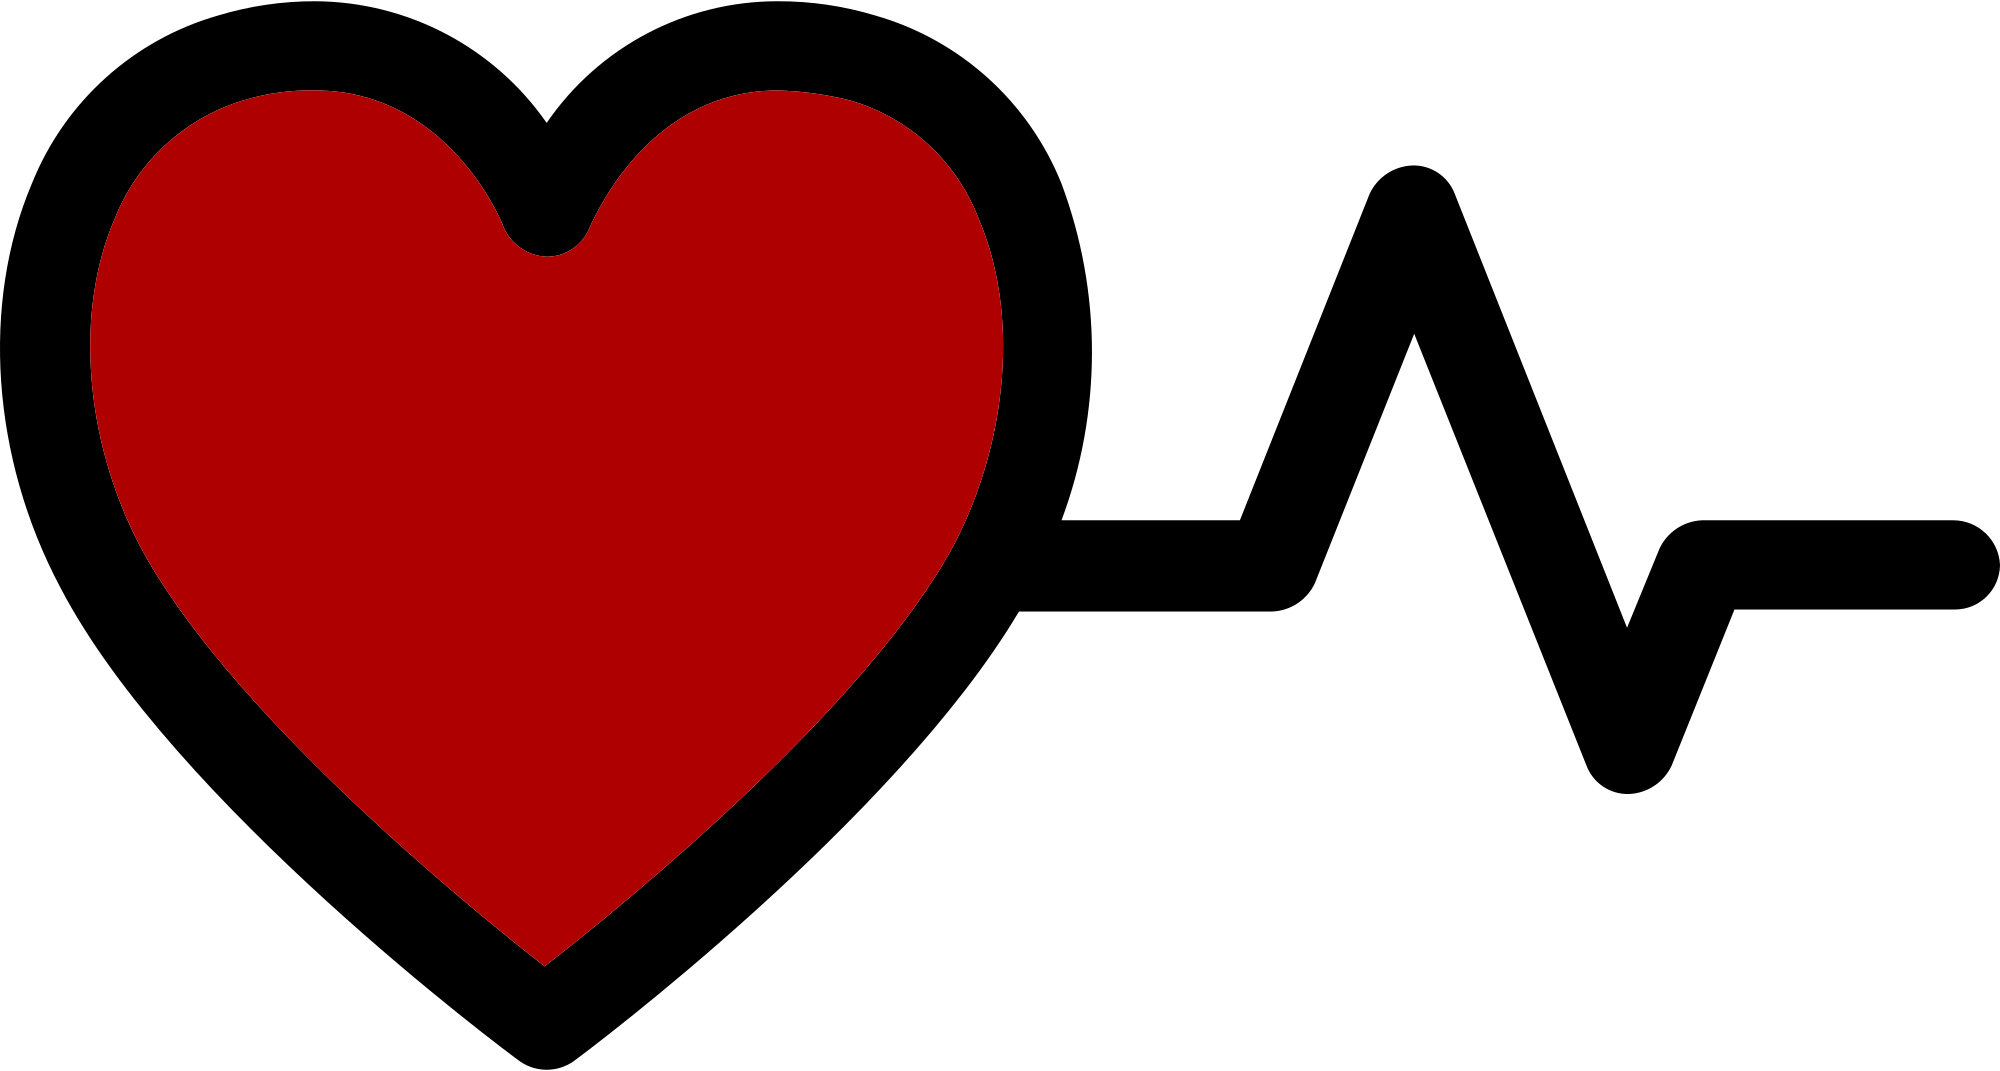 Heartbeat png red. File heart with logo